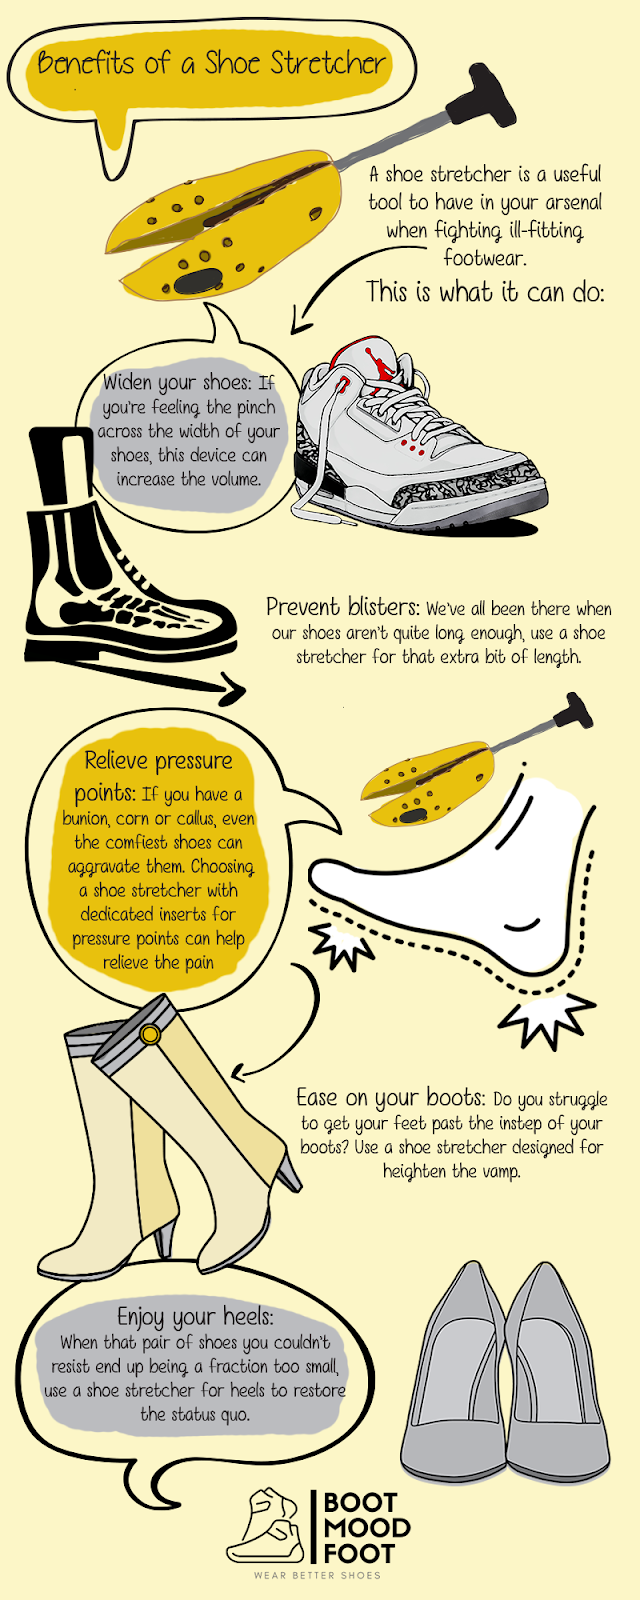 an infographic about shoe stretchers